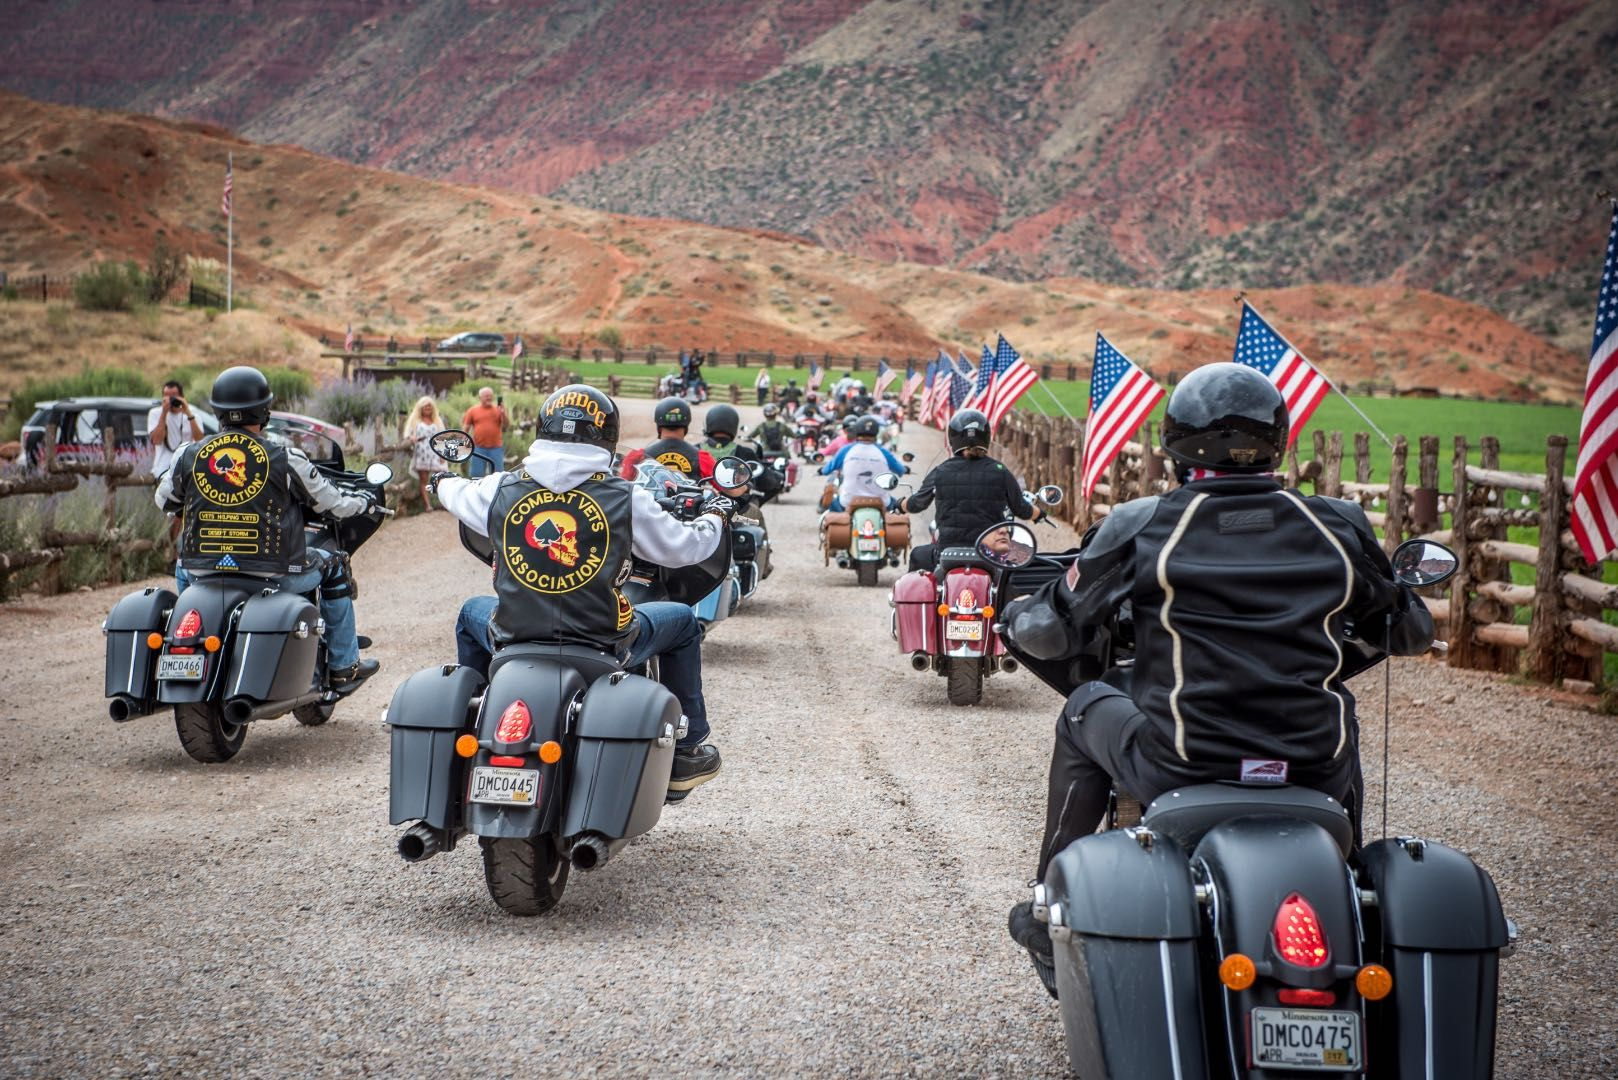 Sturgis Bike Rally 2018 Upcoming Events Are You Ready For The Us